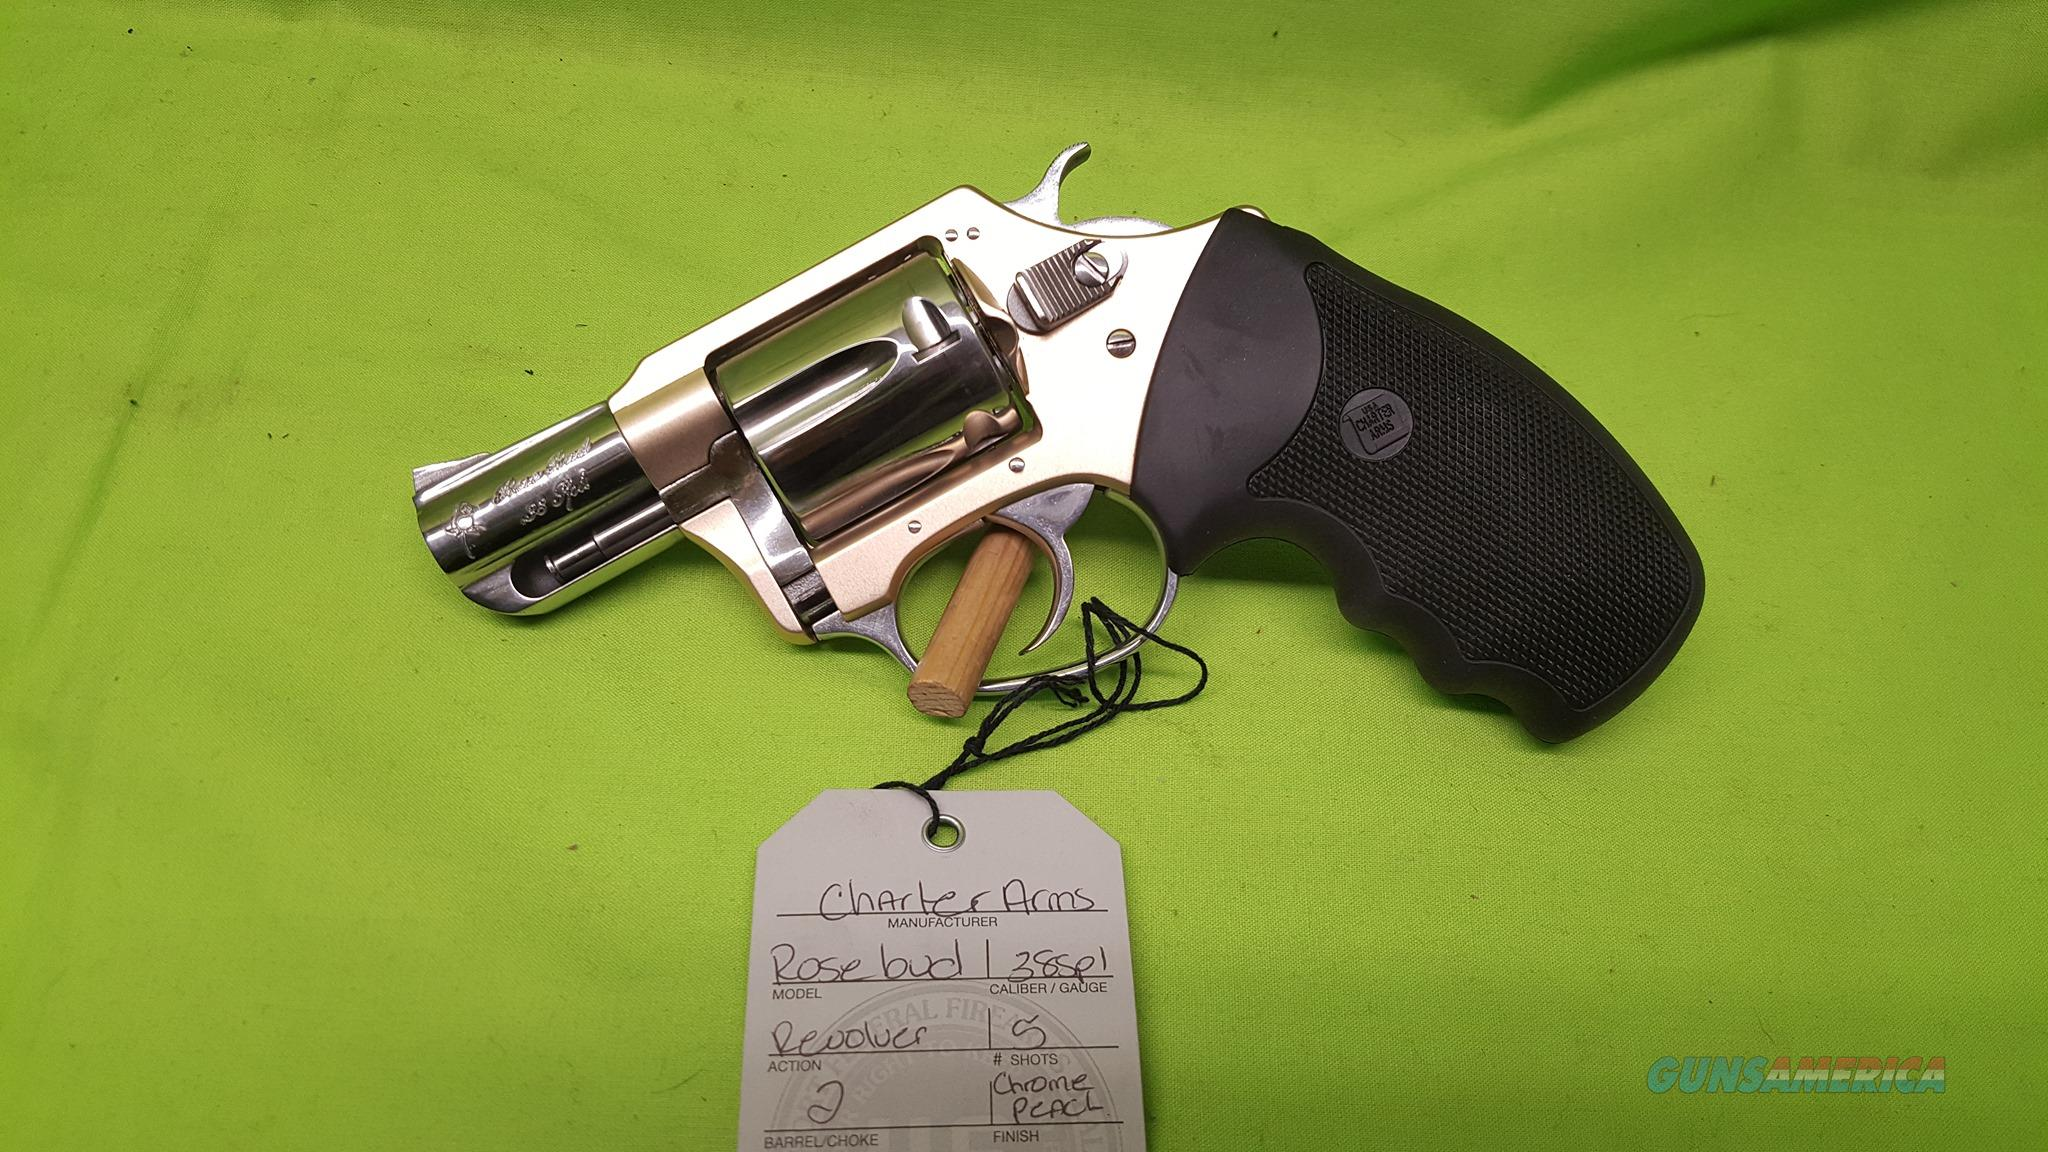 CHARTER ARMS UNDERCOVER ROSEBUD 38SPL 53859  Guns > Pistols > Charter Arms Revolvers